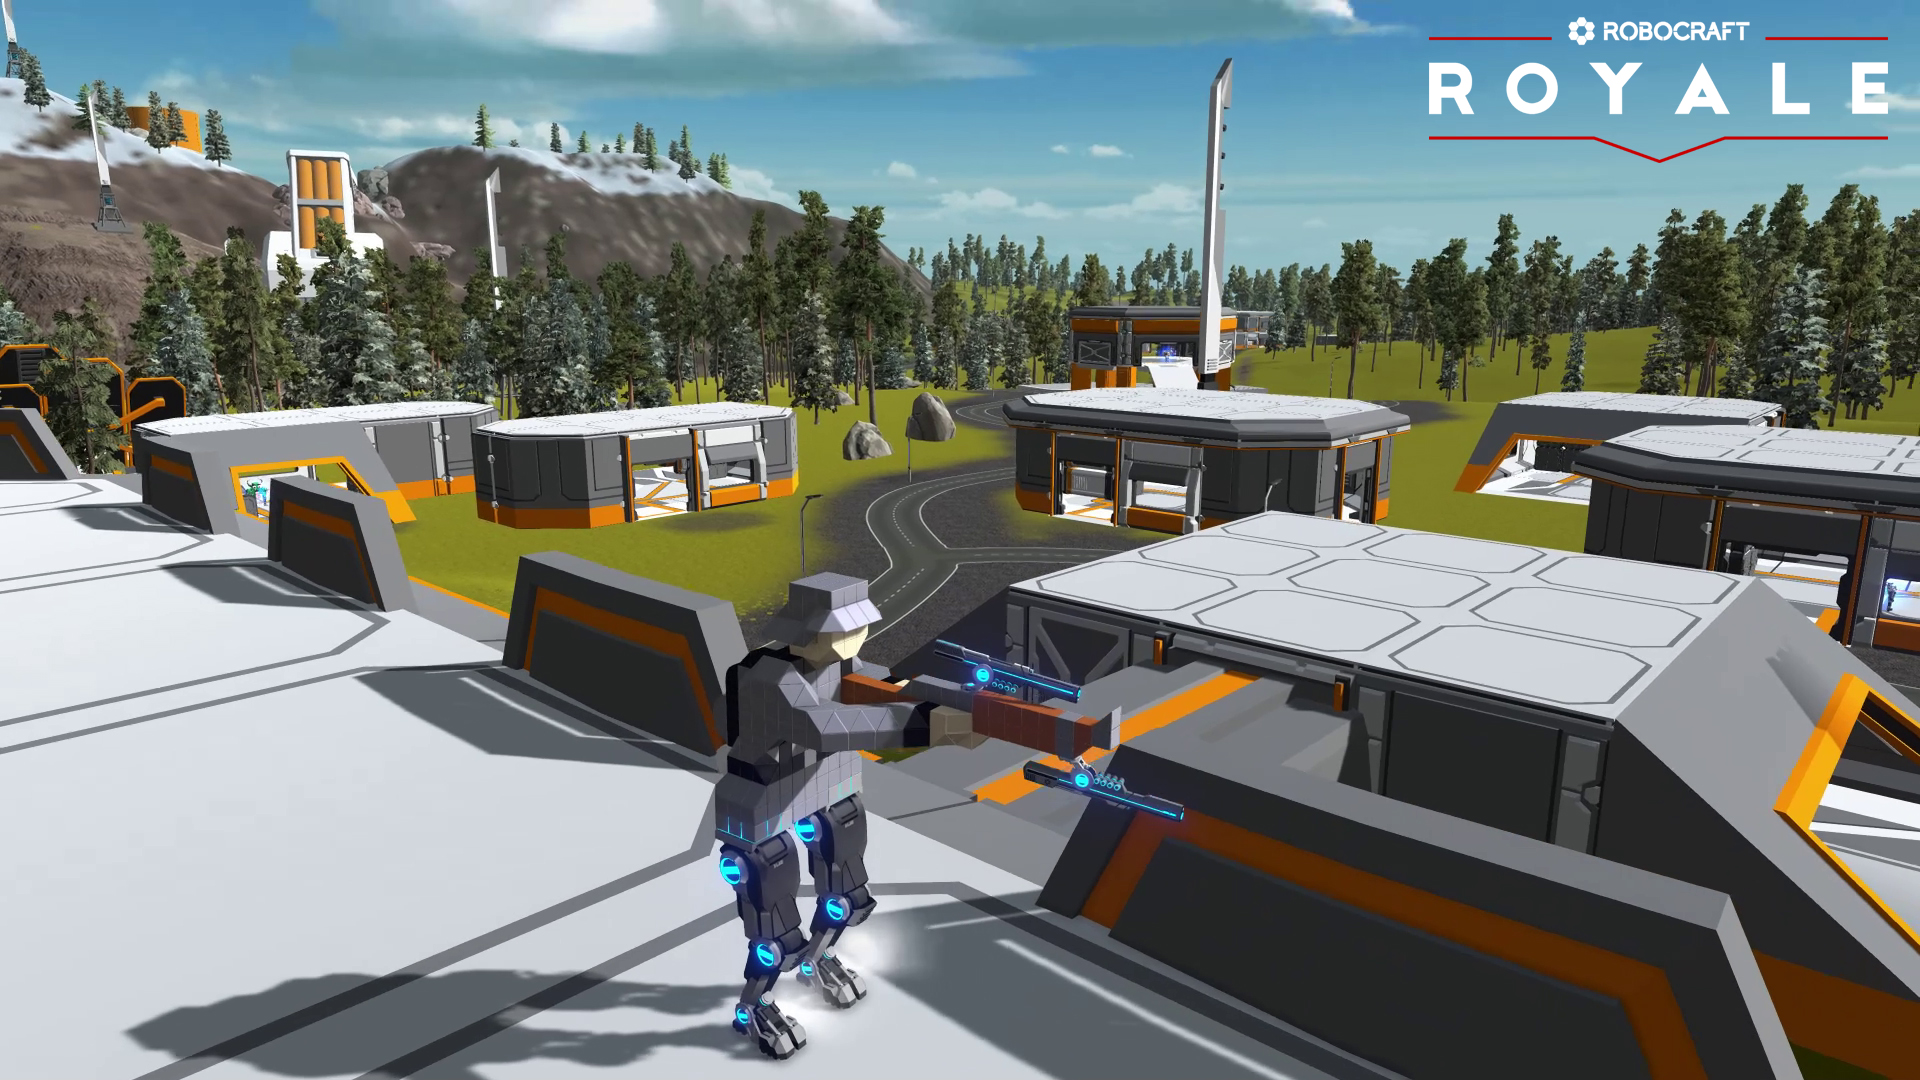 Robocraft Royale Launches March 26th on Steam Early Access